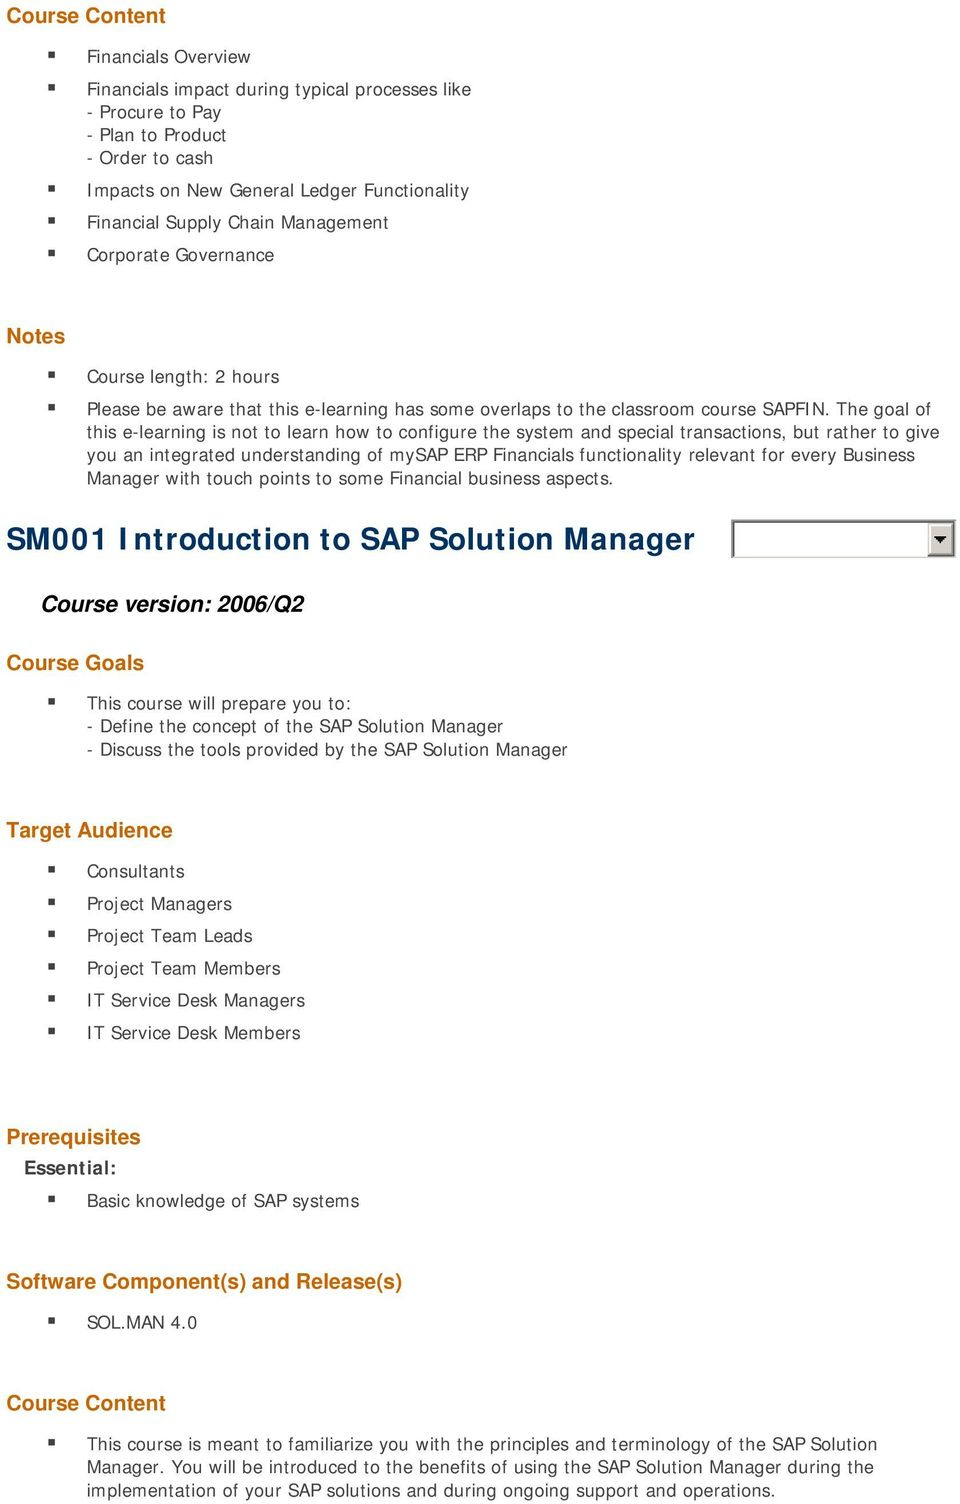 The goal of this e-learning is not to learn how to configure the system and special transactions, but rather to give you an integrated understanding of mysap ERP Financials functionality relevant for